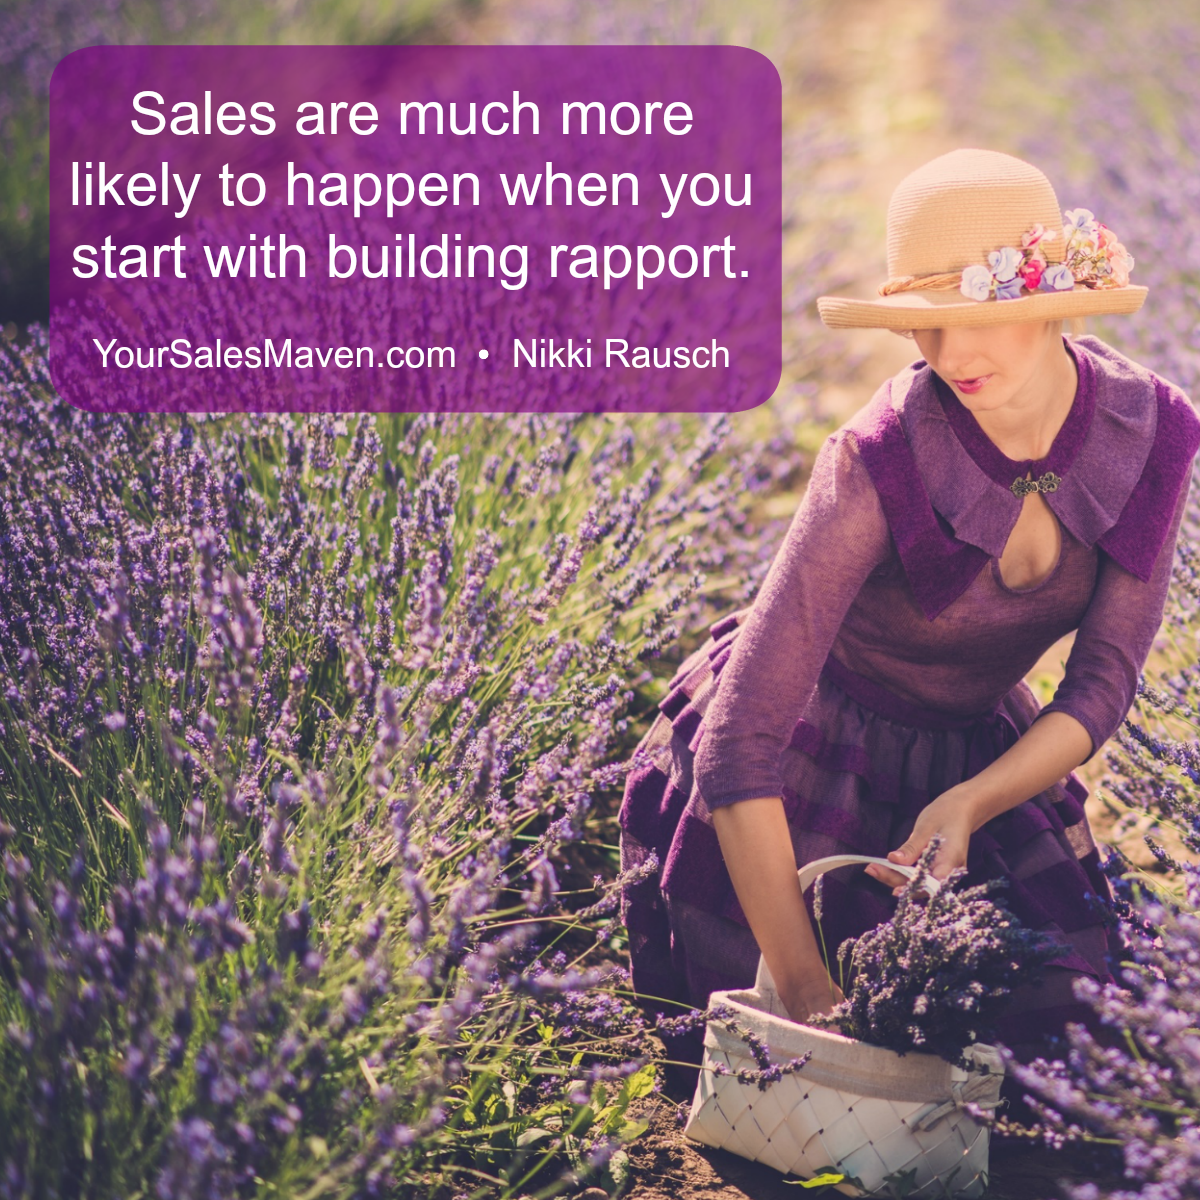 selling to women, rapport, sales training, selling skills, Sales Maven, Nikki Rausch